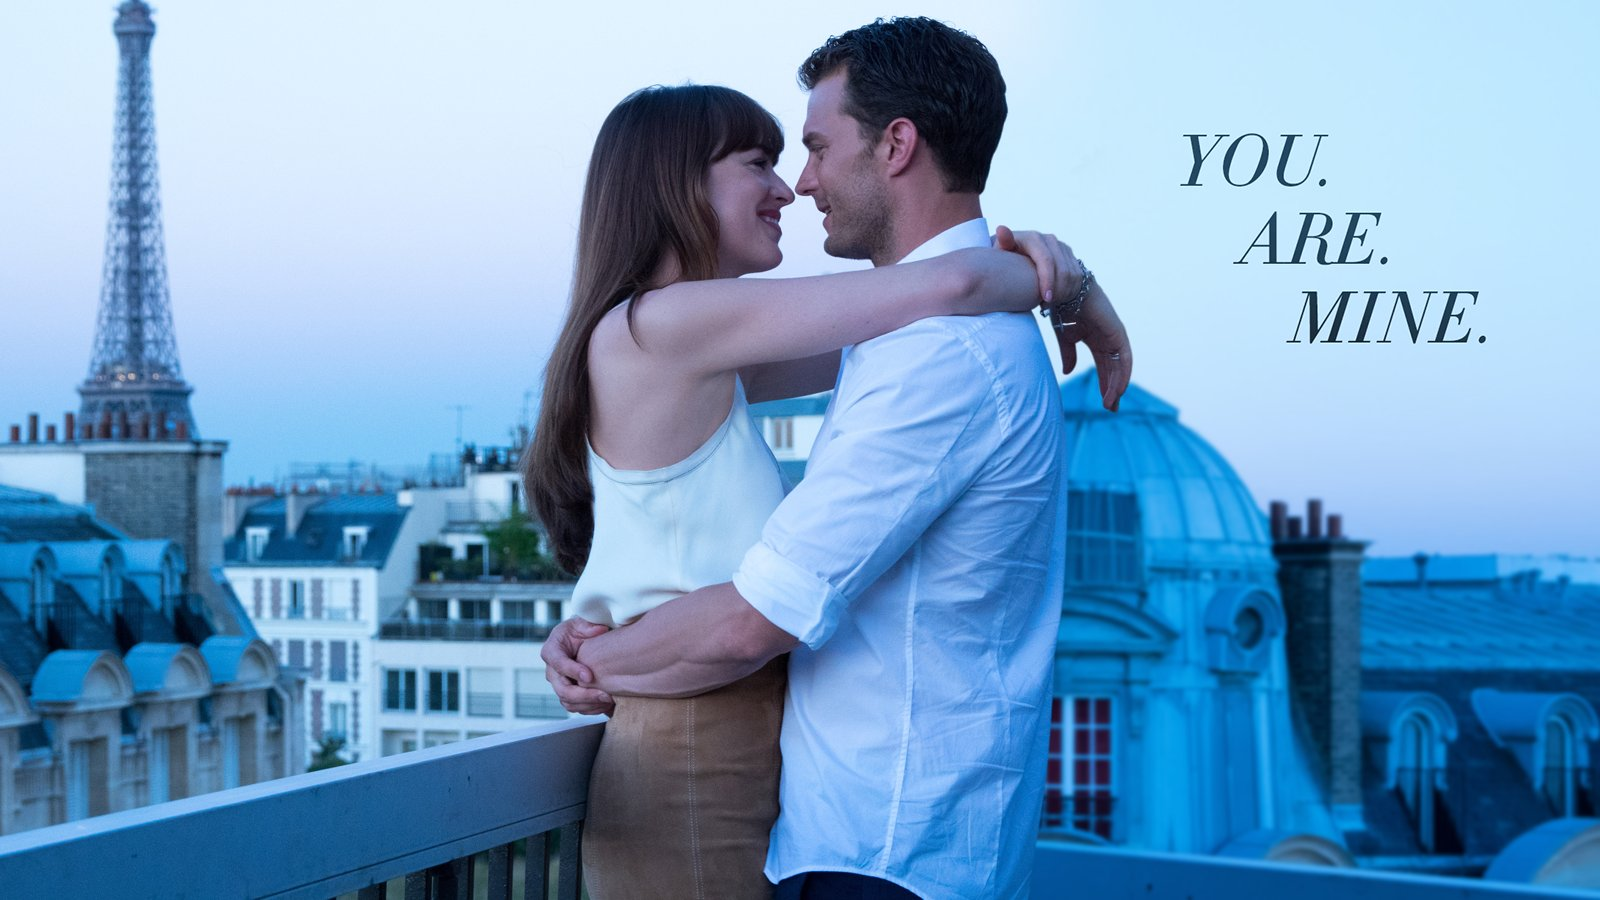 Together forever. Happy Valentine's Day from #FiftyShadesFreed. https://t.co/PItwn4ZJ0R https://t.co/VGFj8g720e